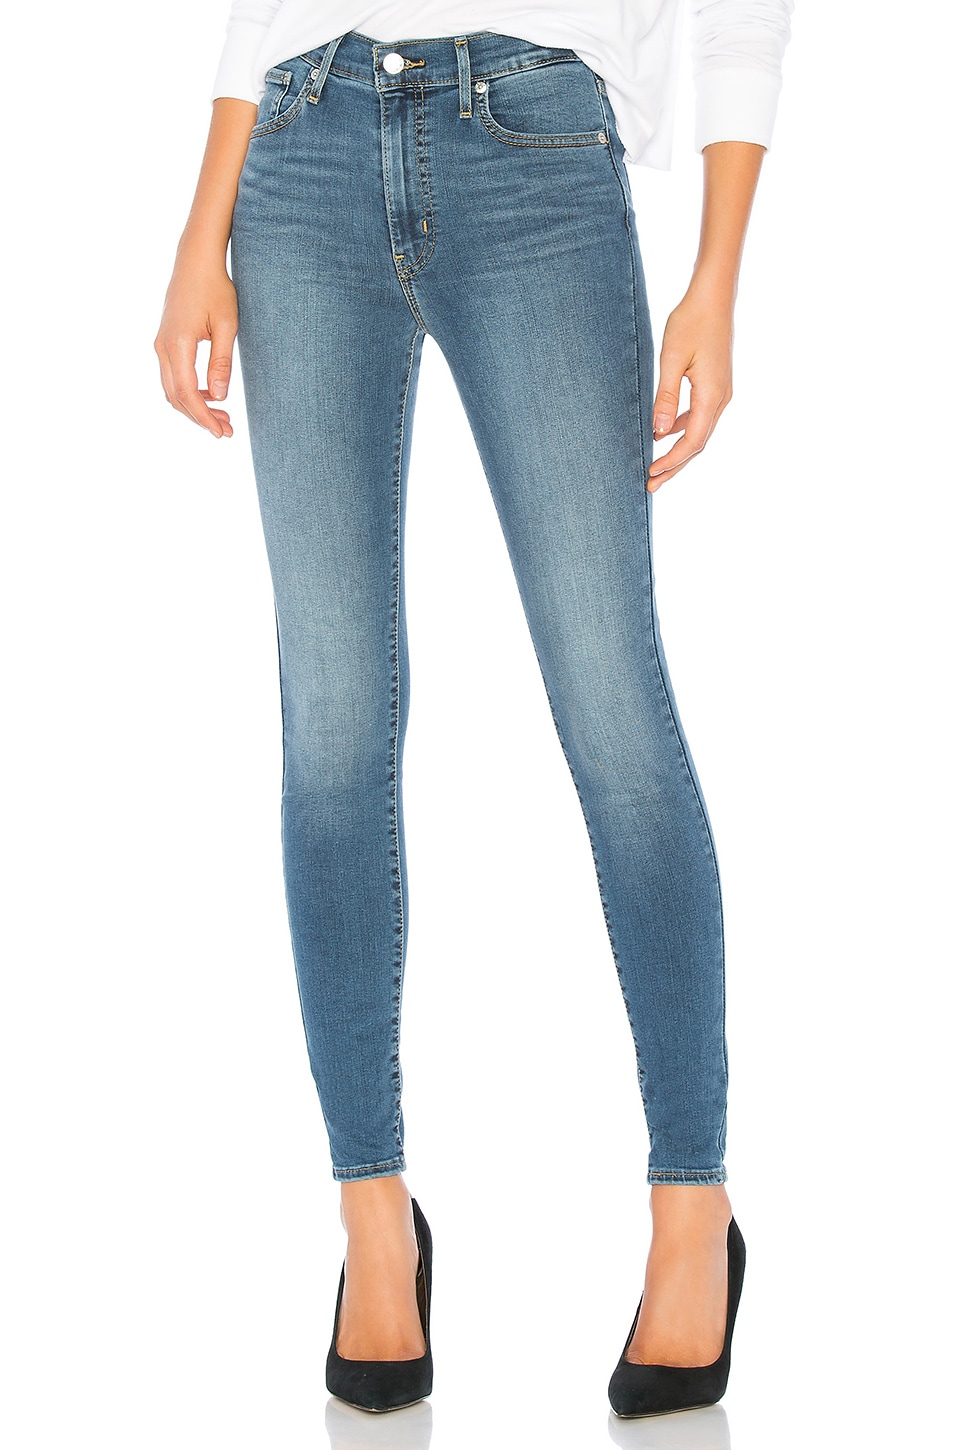 Levi's Women's Skinny Jeans Mile High Super Skinny    RRP £85